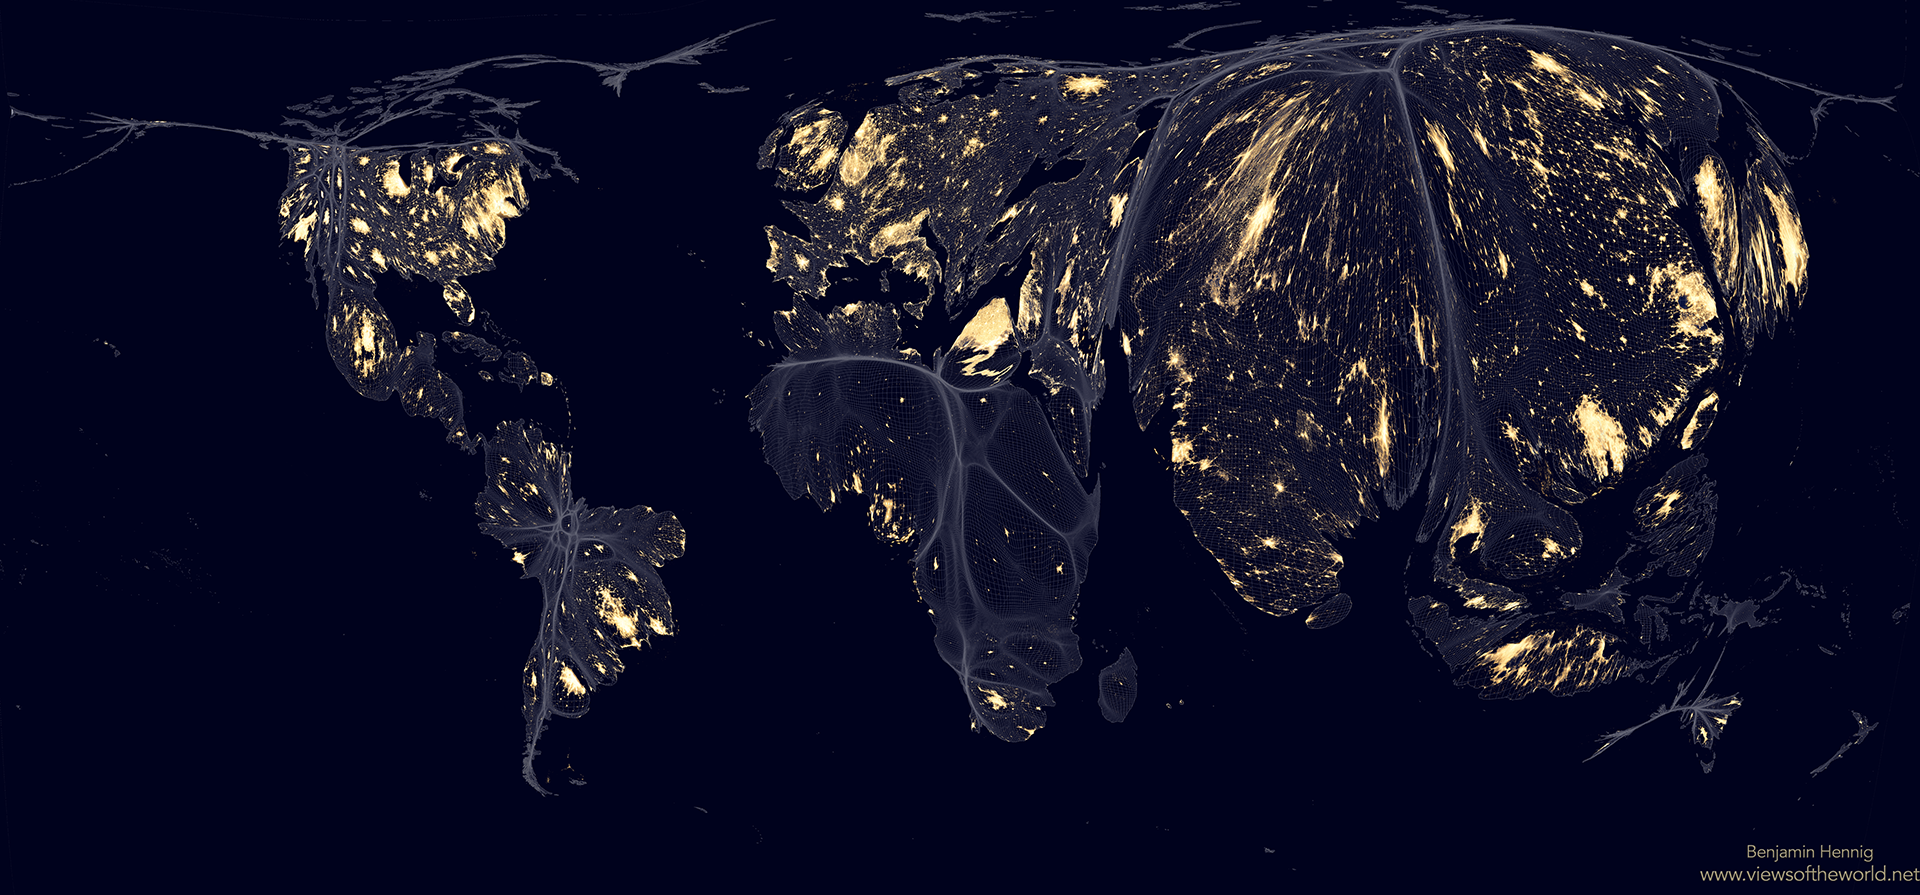 Seven Maps of the World: Inequality and Unsustainability - Earth at Night